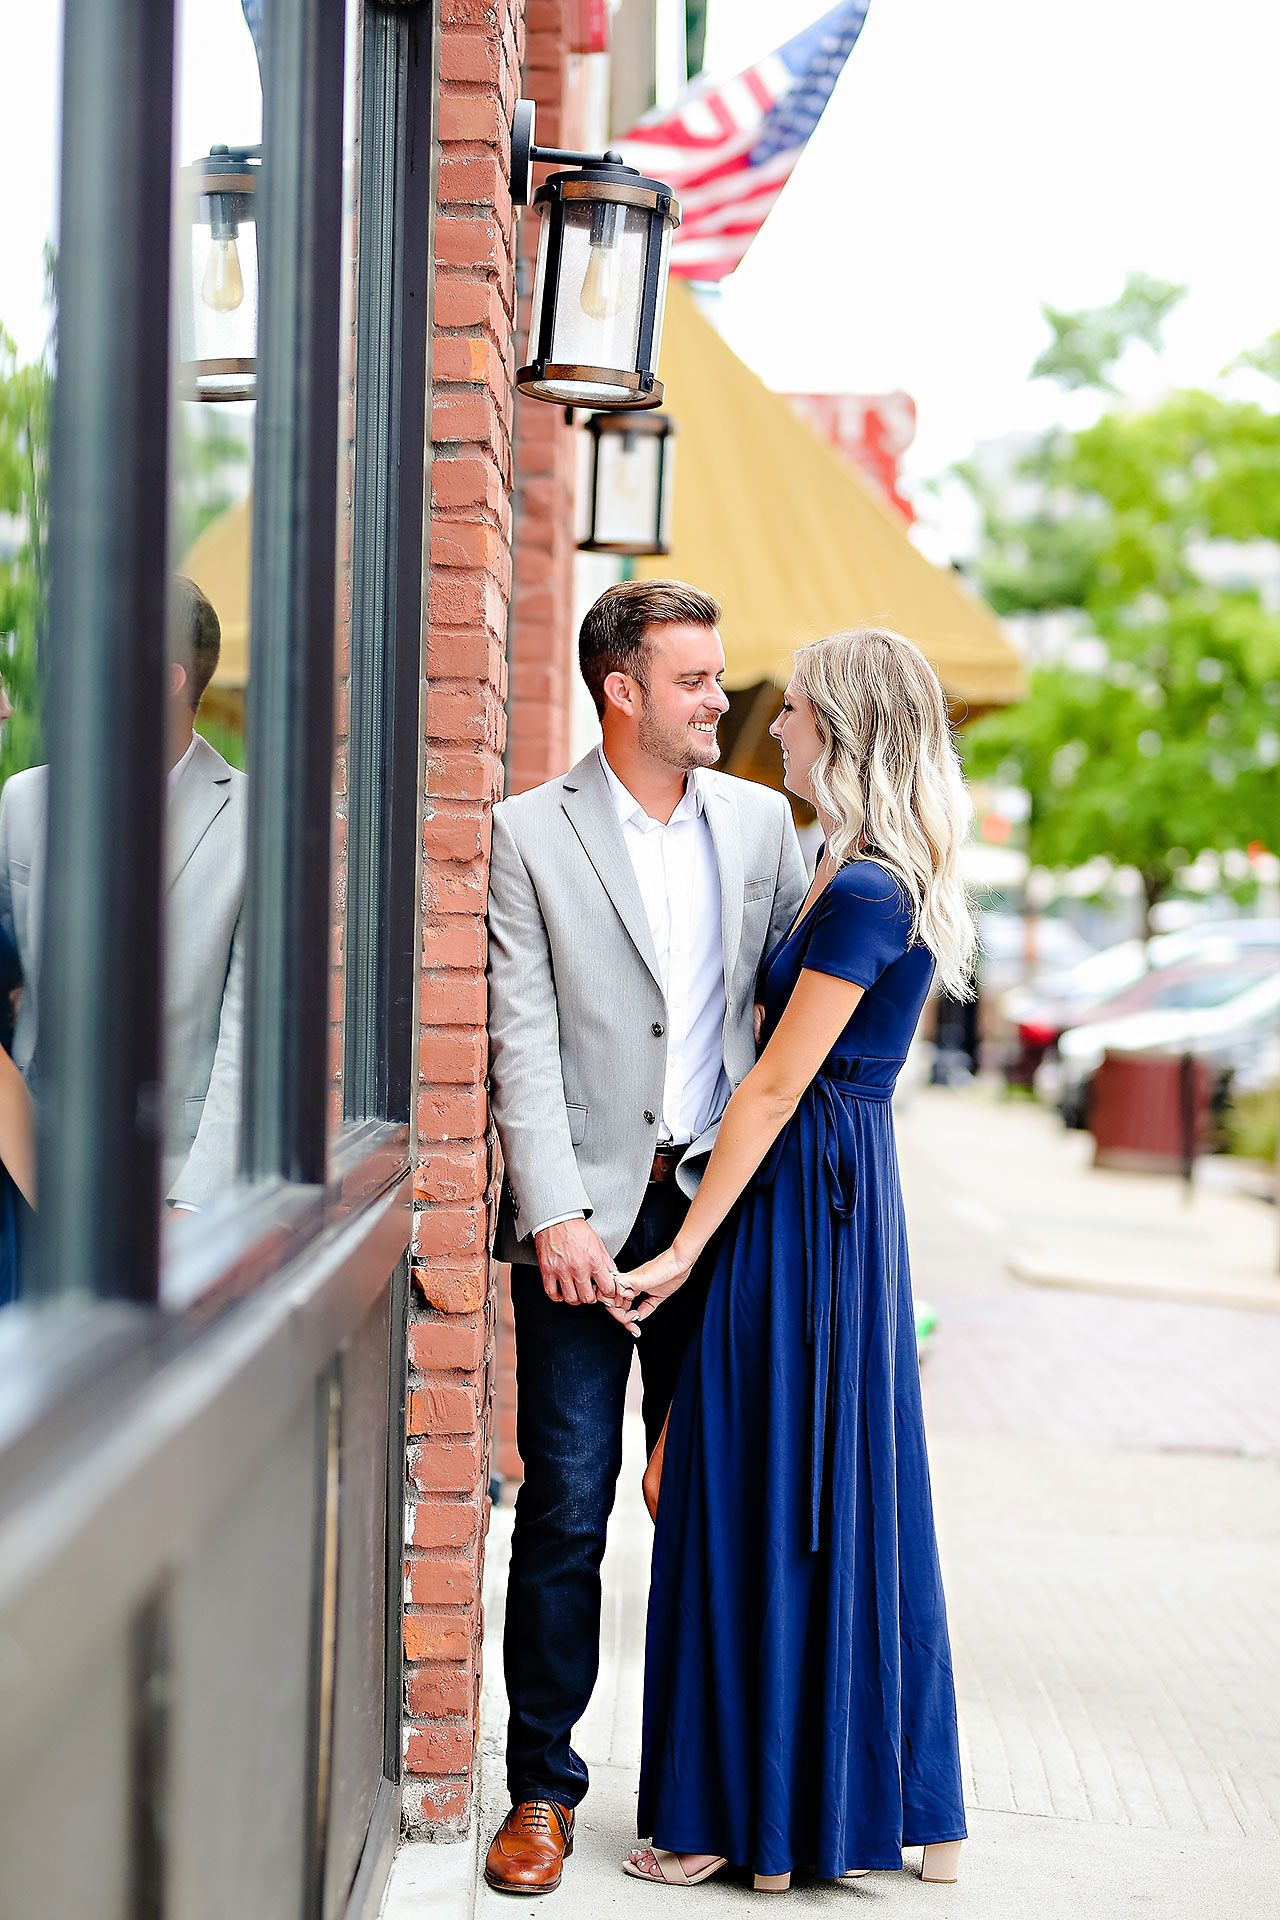 Melanie Jordan Mass Ave Engagement Session 058